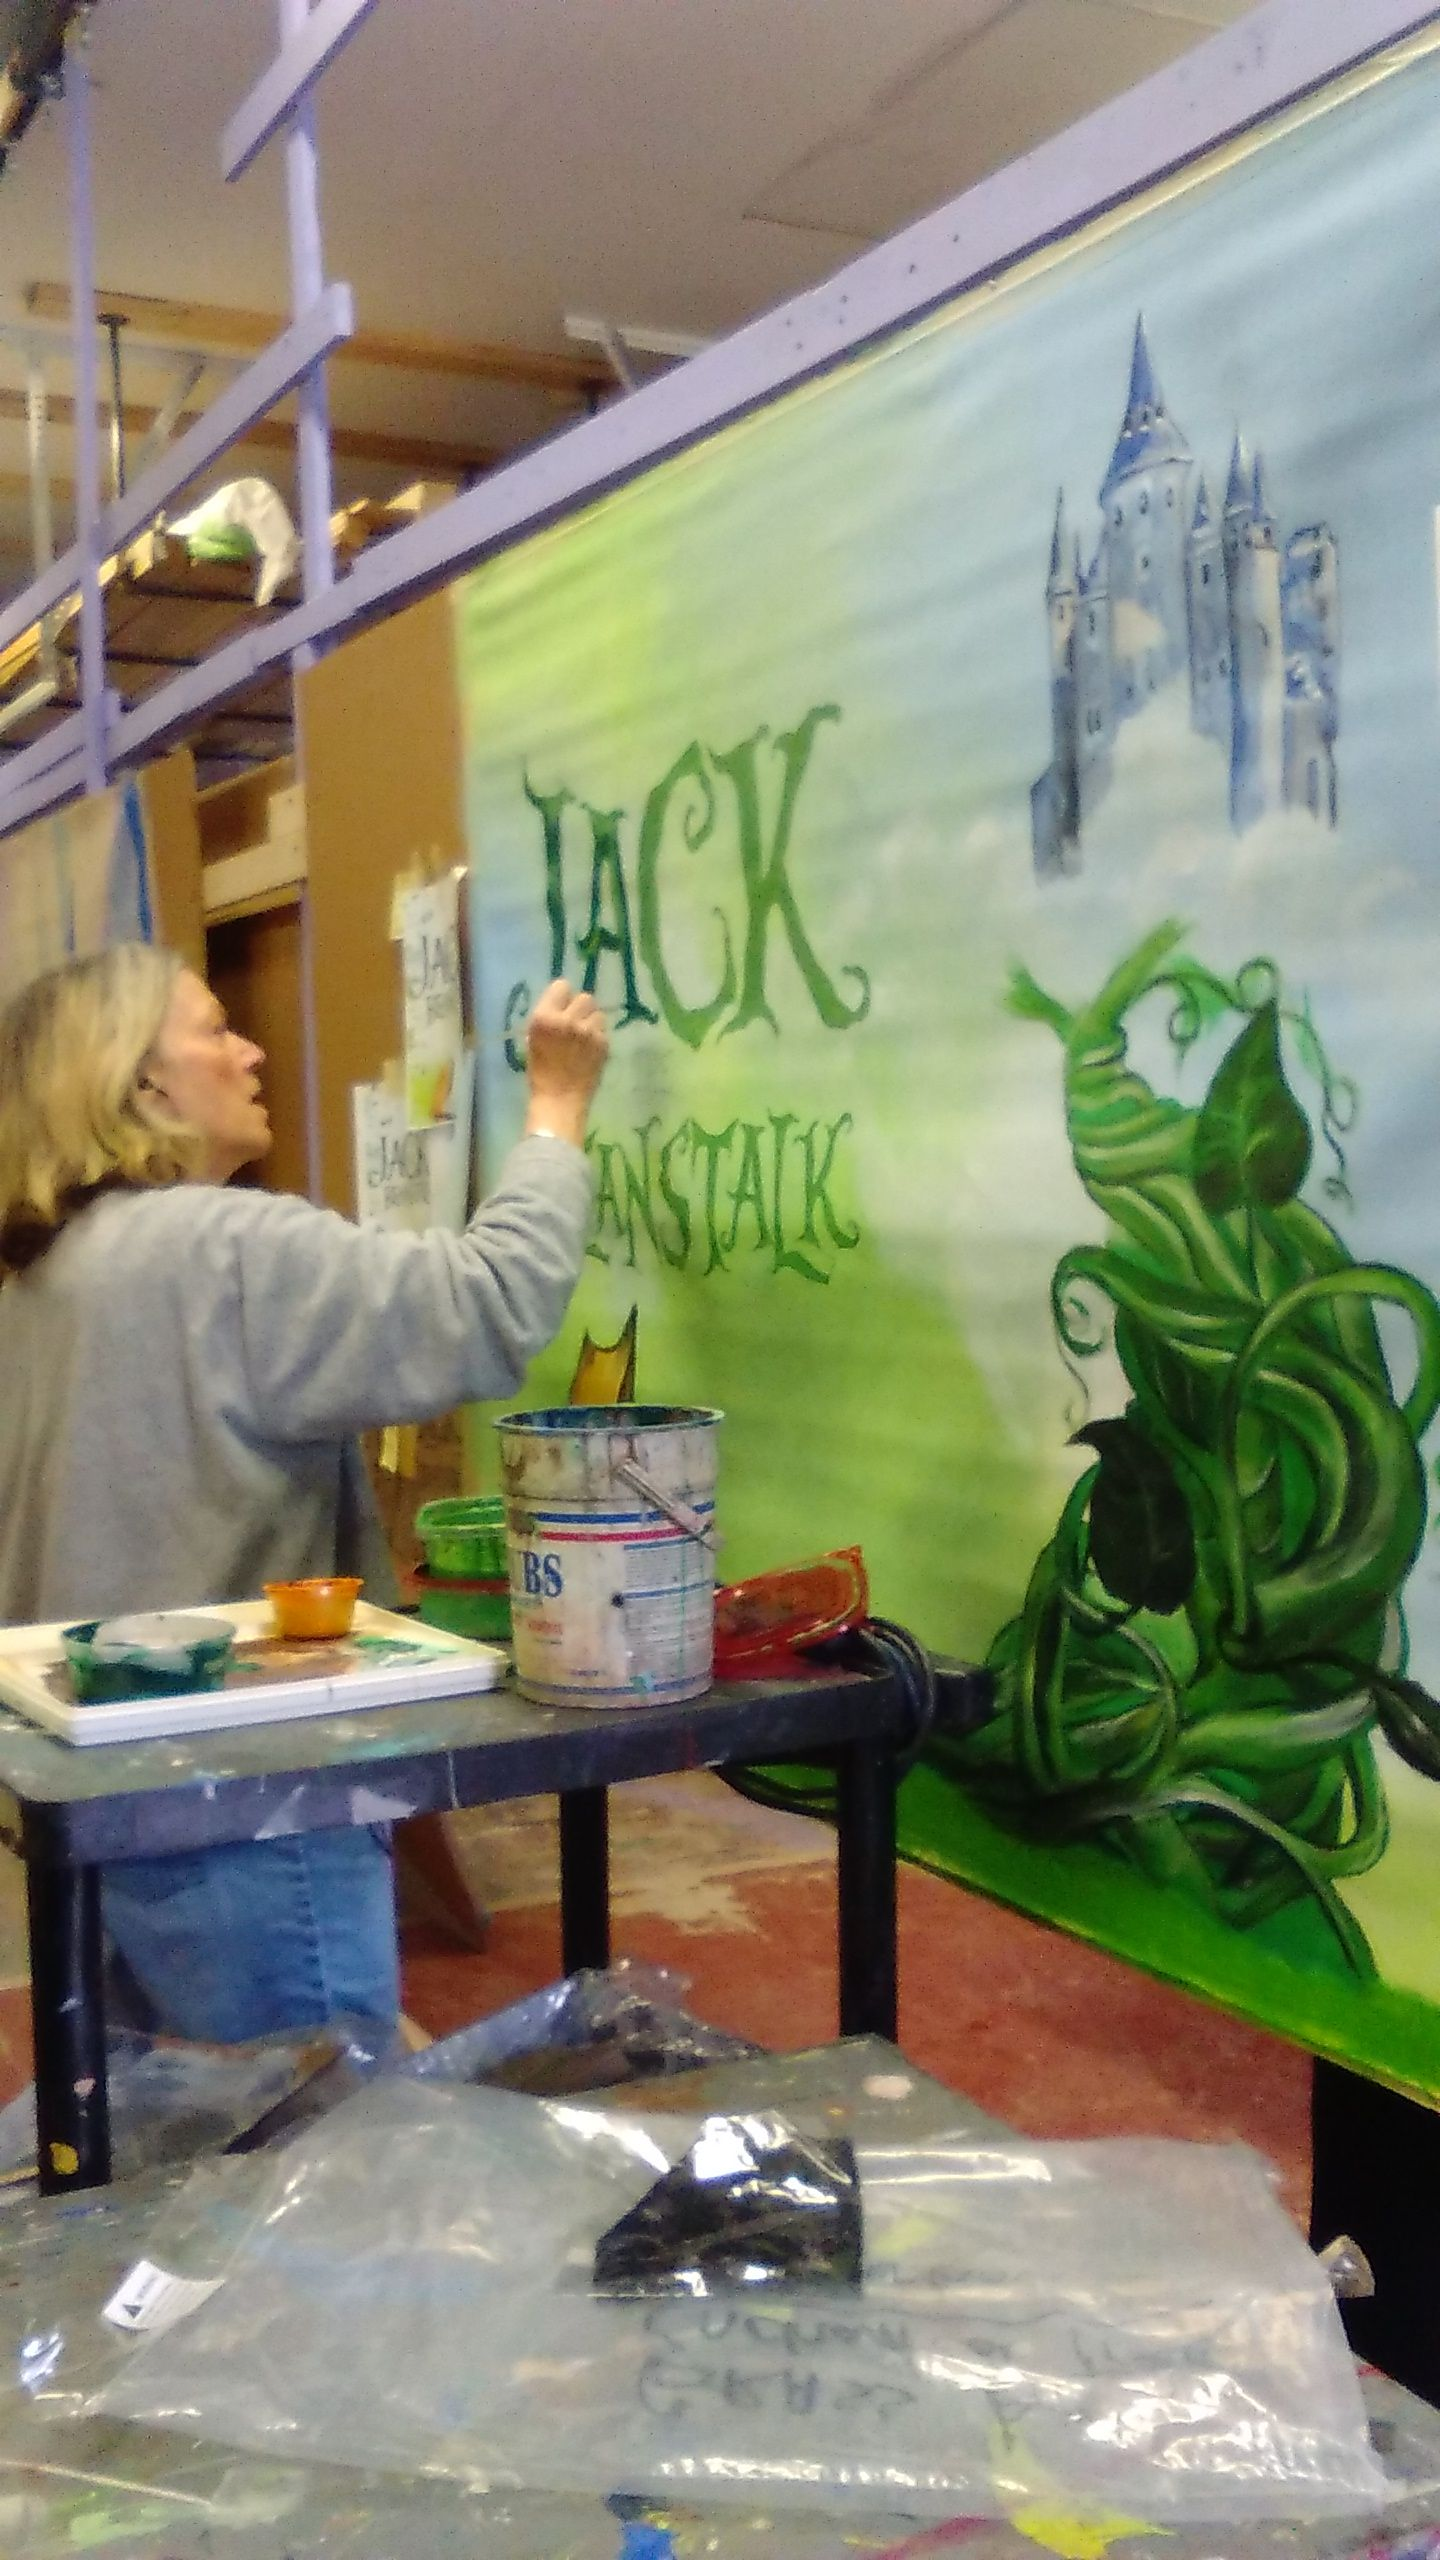 Beverly paints lettering on Jack & Beanstalk page